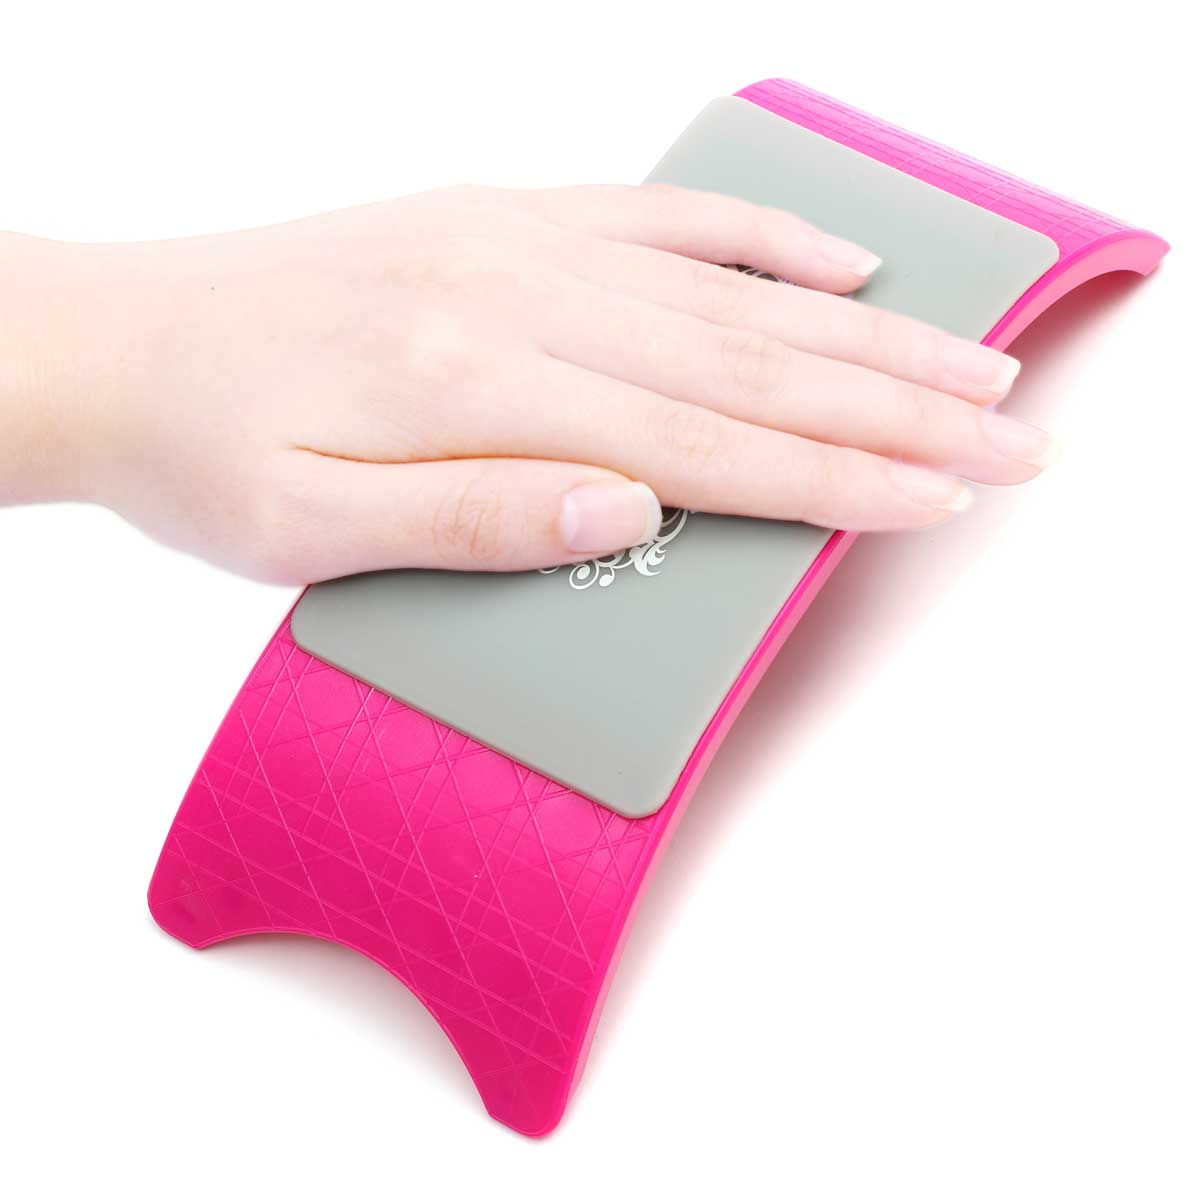 Nail Art Manicure Hand Rest Pad Holder Acrylic Rubber Cushion Pillow Tool